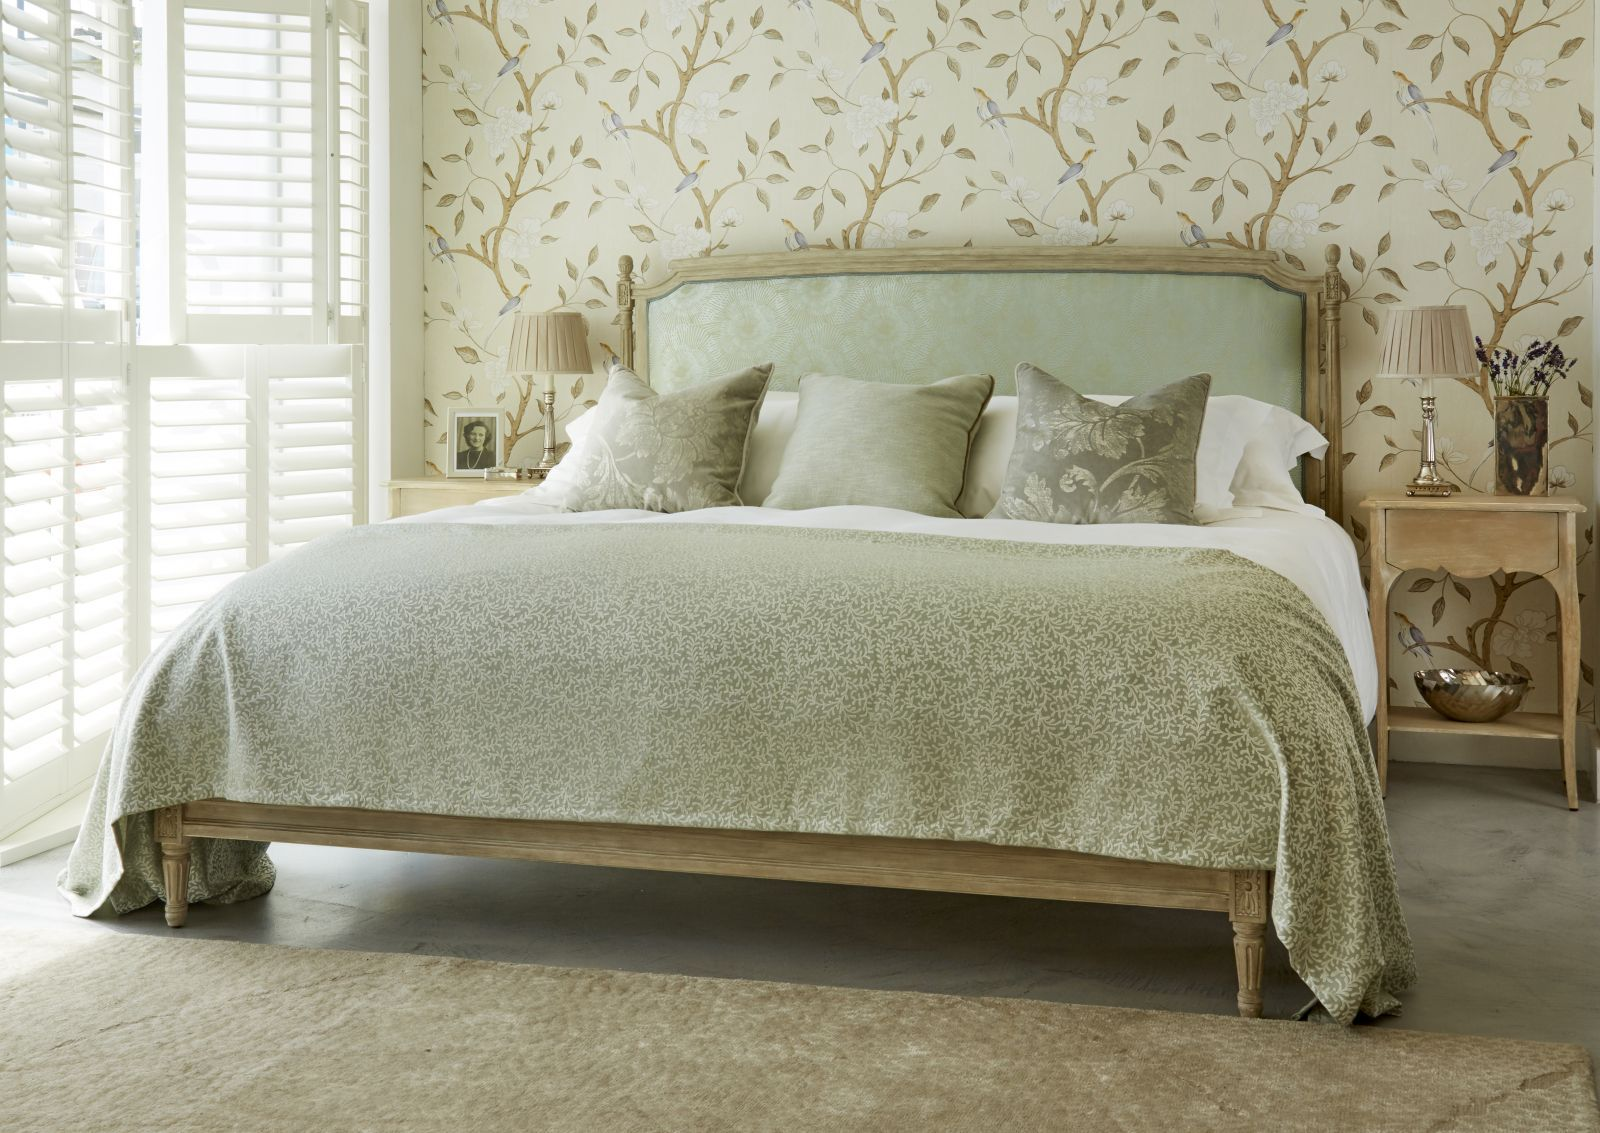 Famous for its romantic French beds, Simon Horn offers a